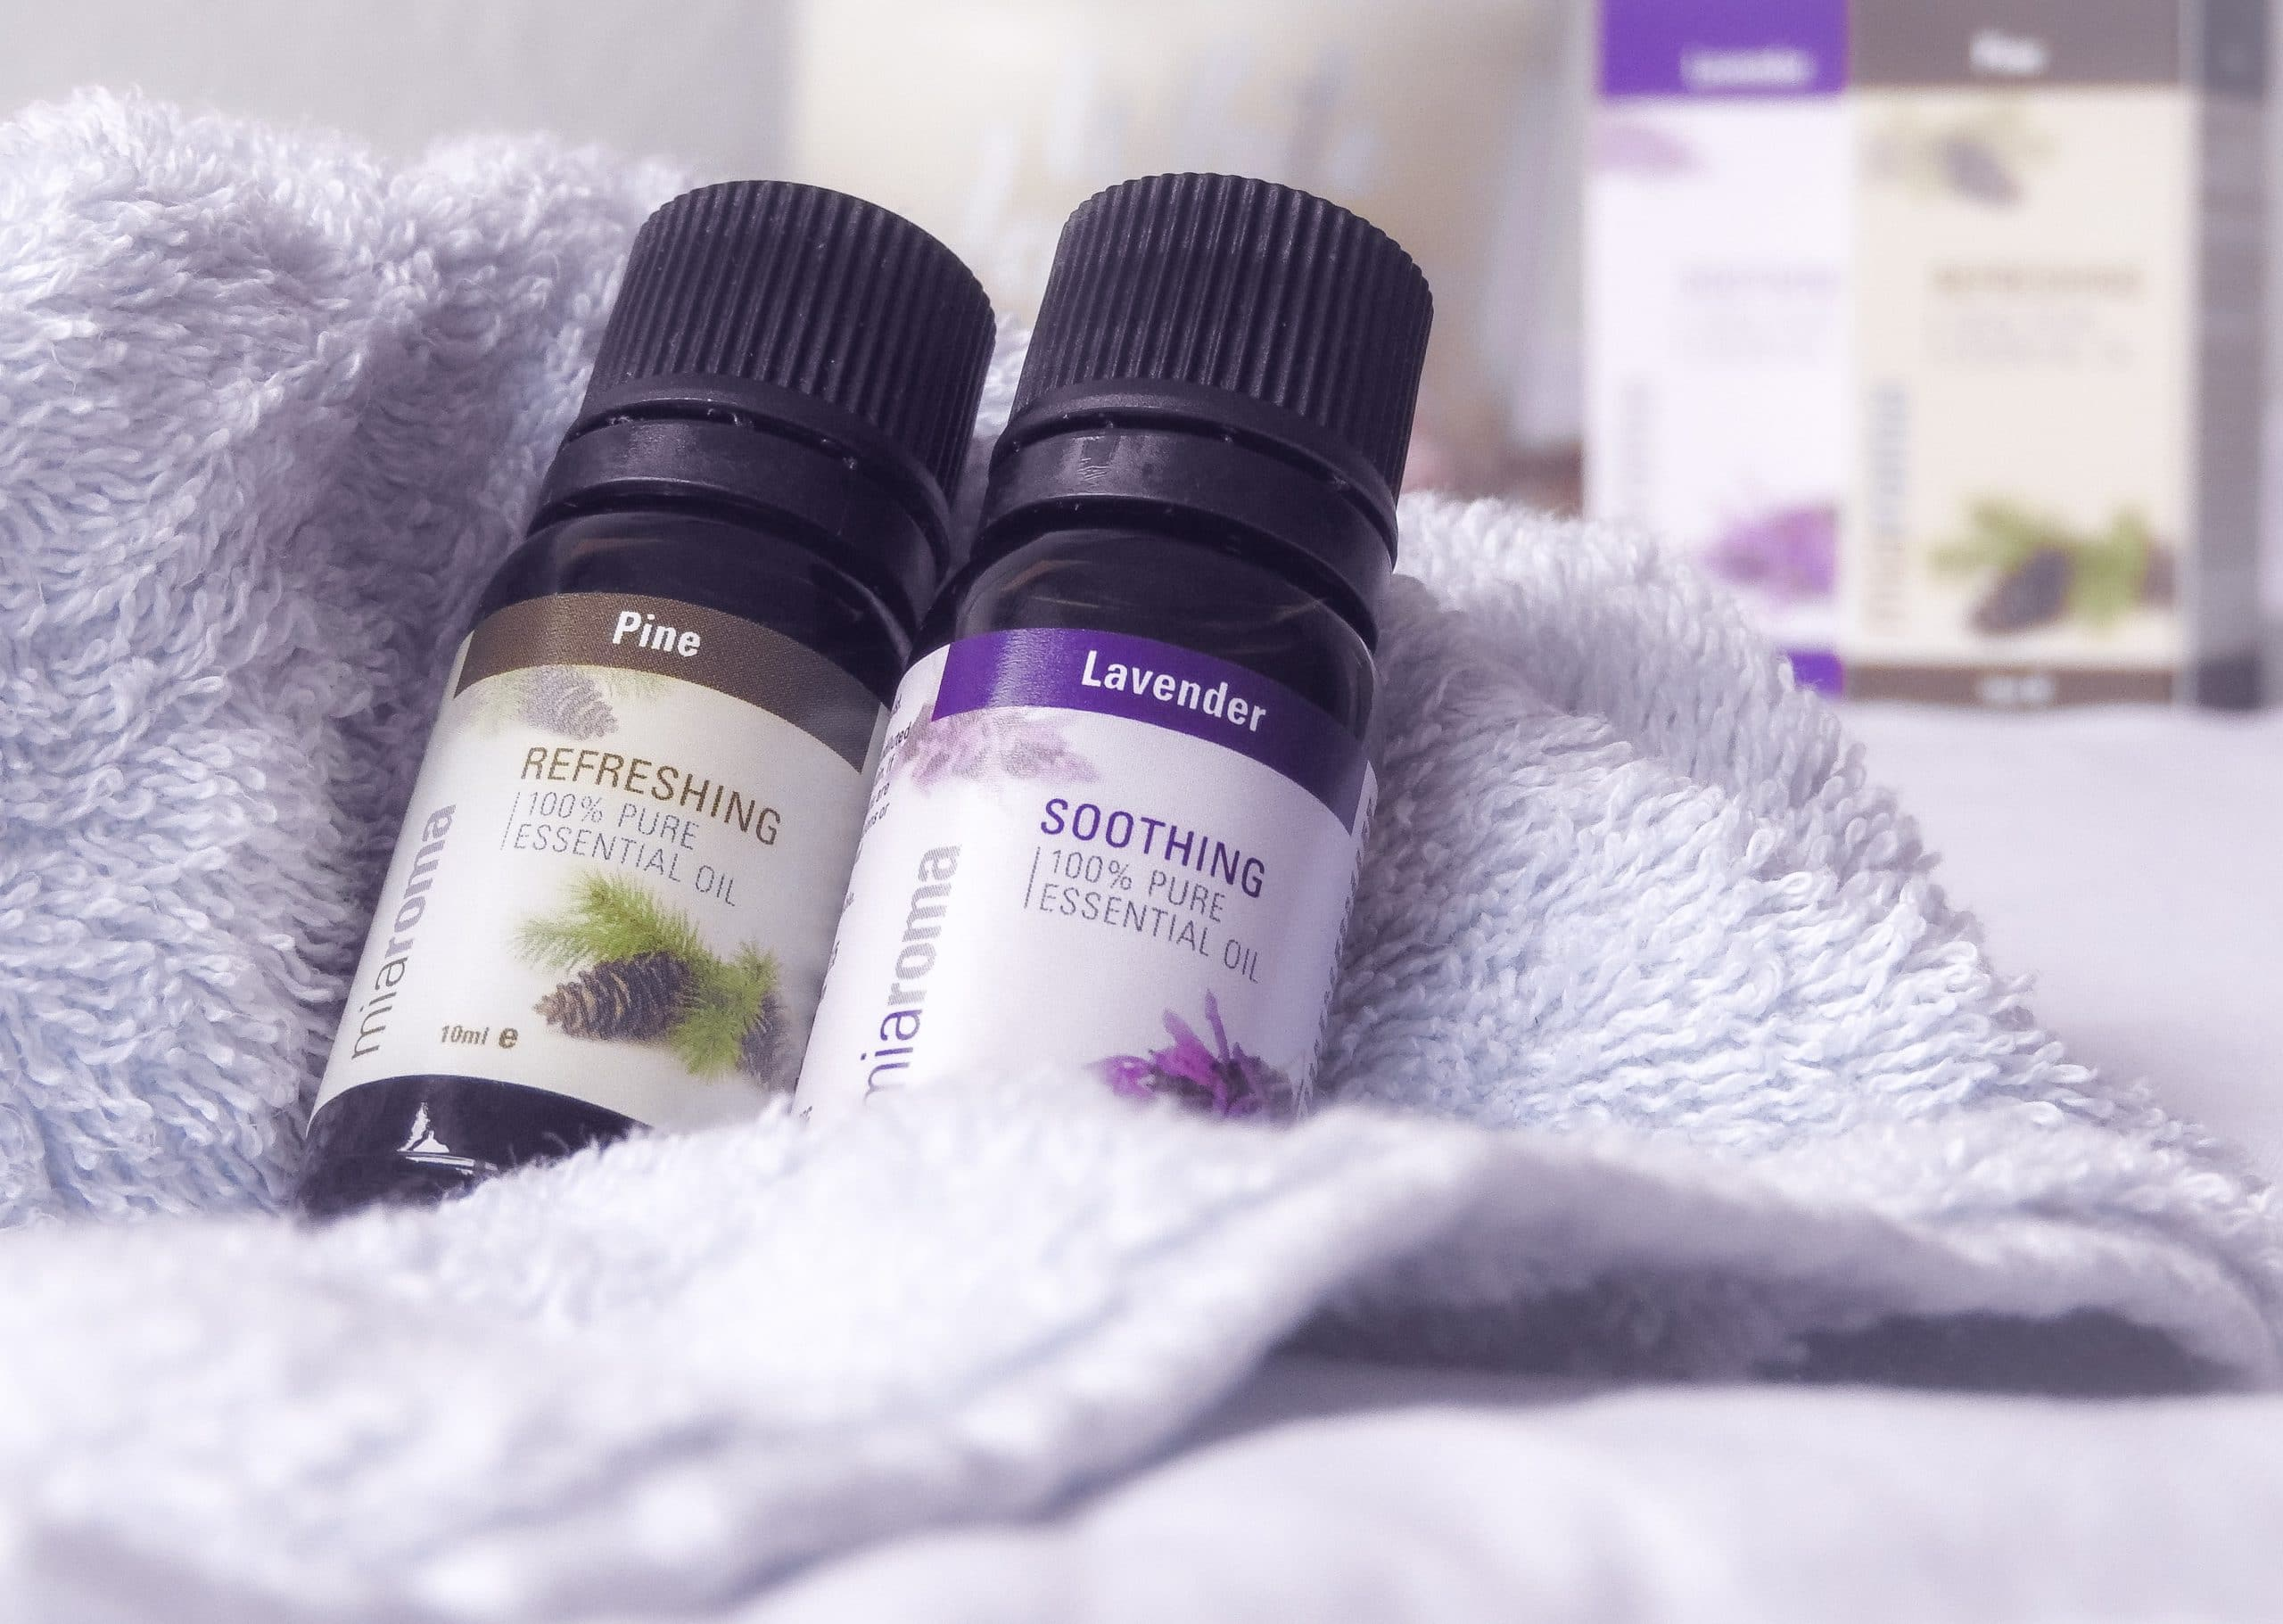 Is doing laundry with essential oil safe for clothes